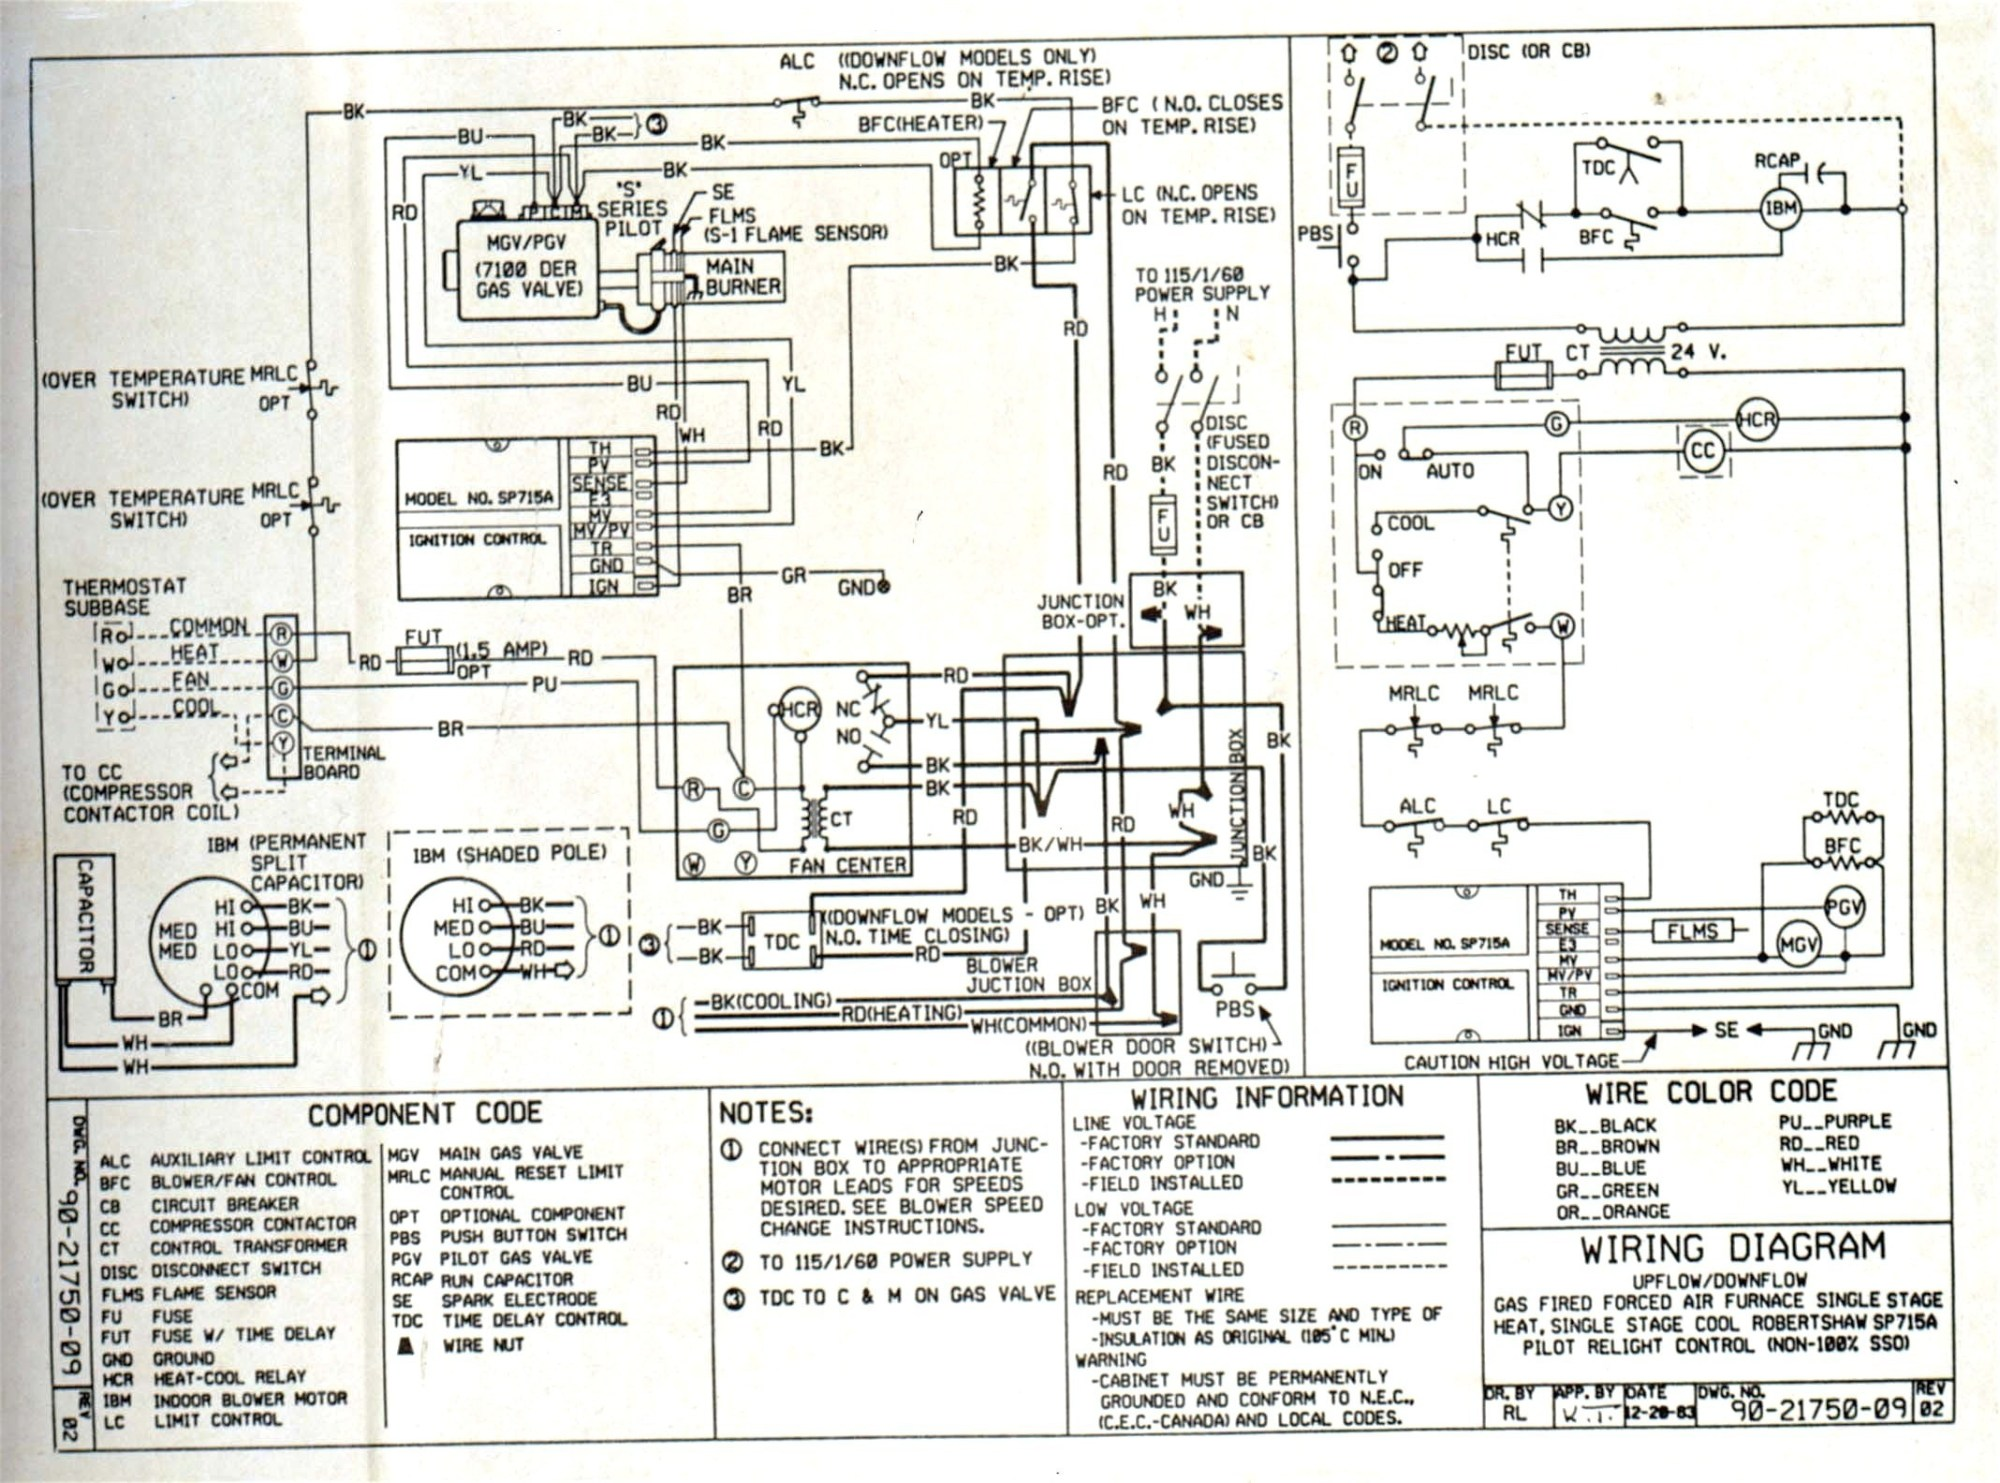 hight resolution of ruud wiring diagram wiring diagram paper wiring ruud diagram model furnace ugwh095bjr